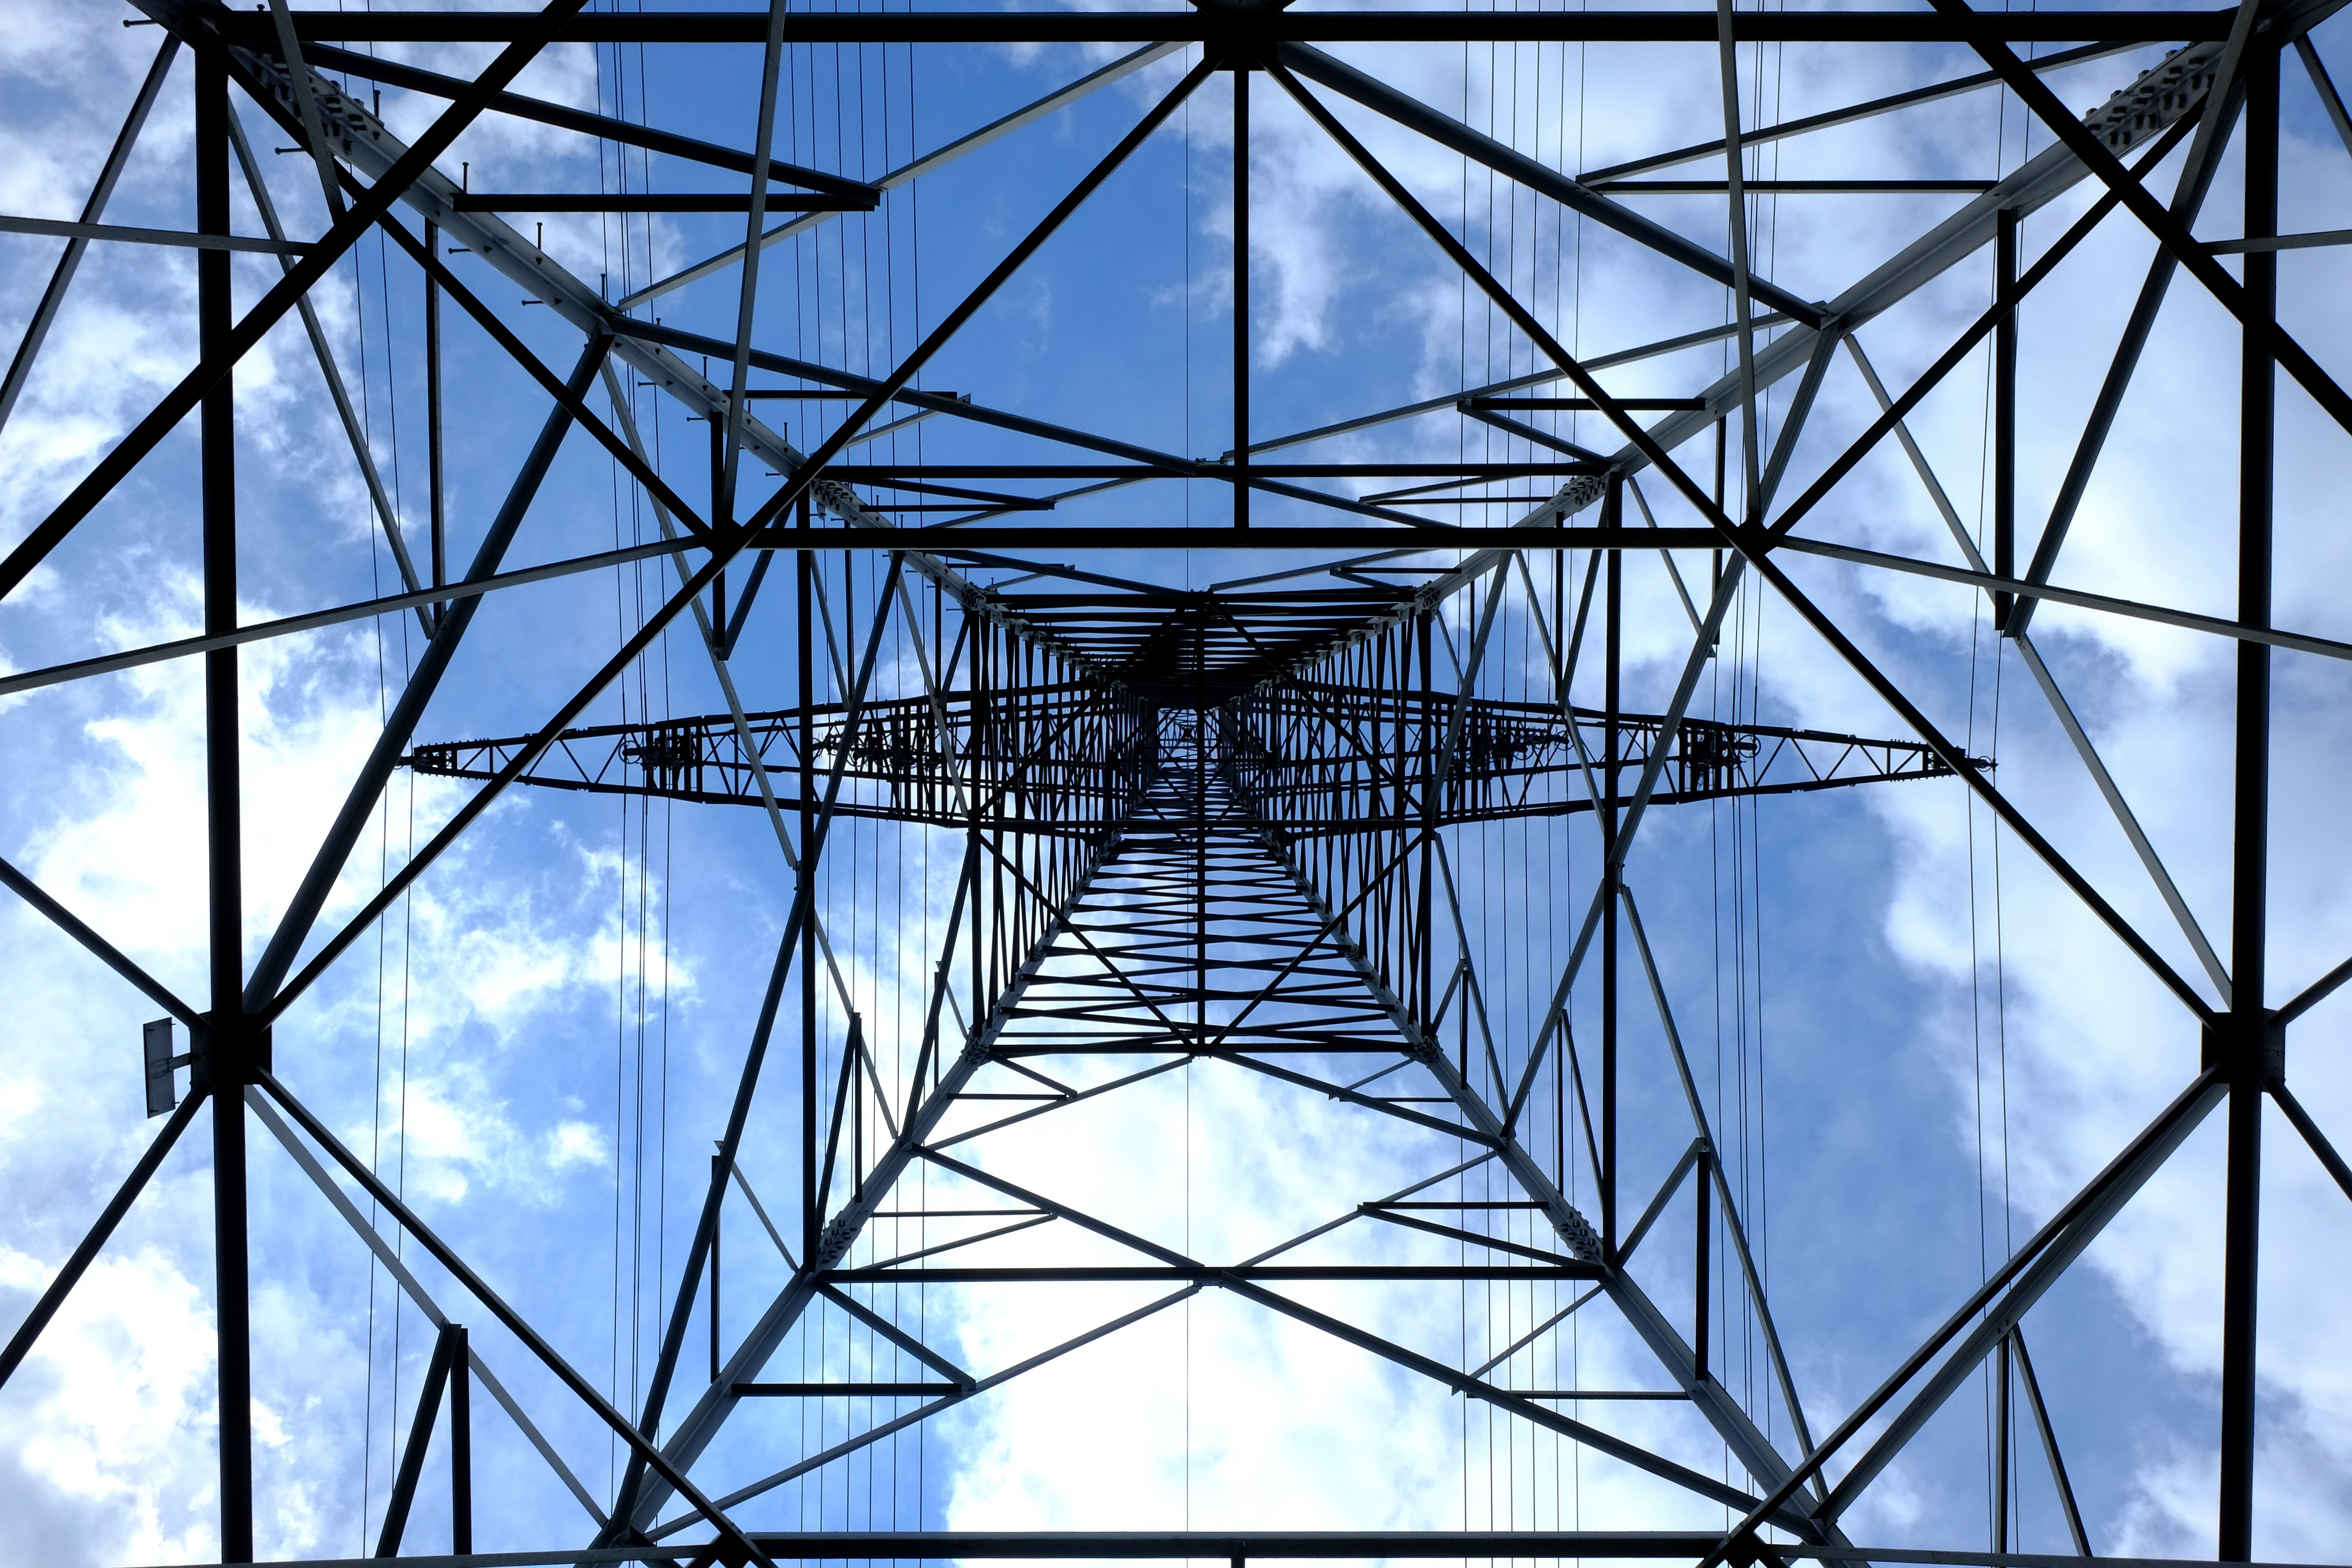 low-angle-photograph-of-black-metal-tower-satellite-during-159279